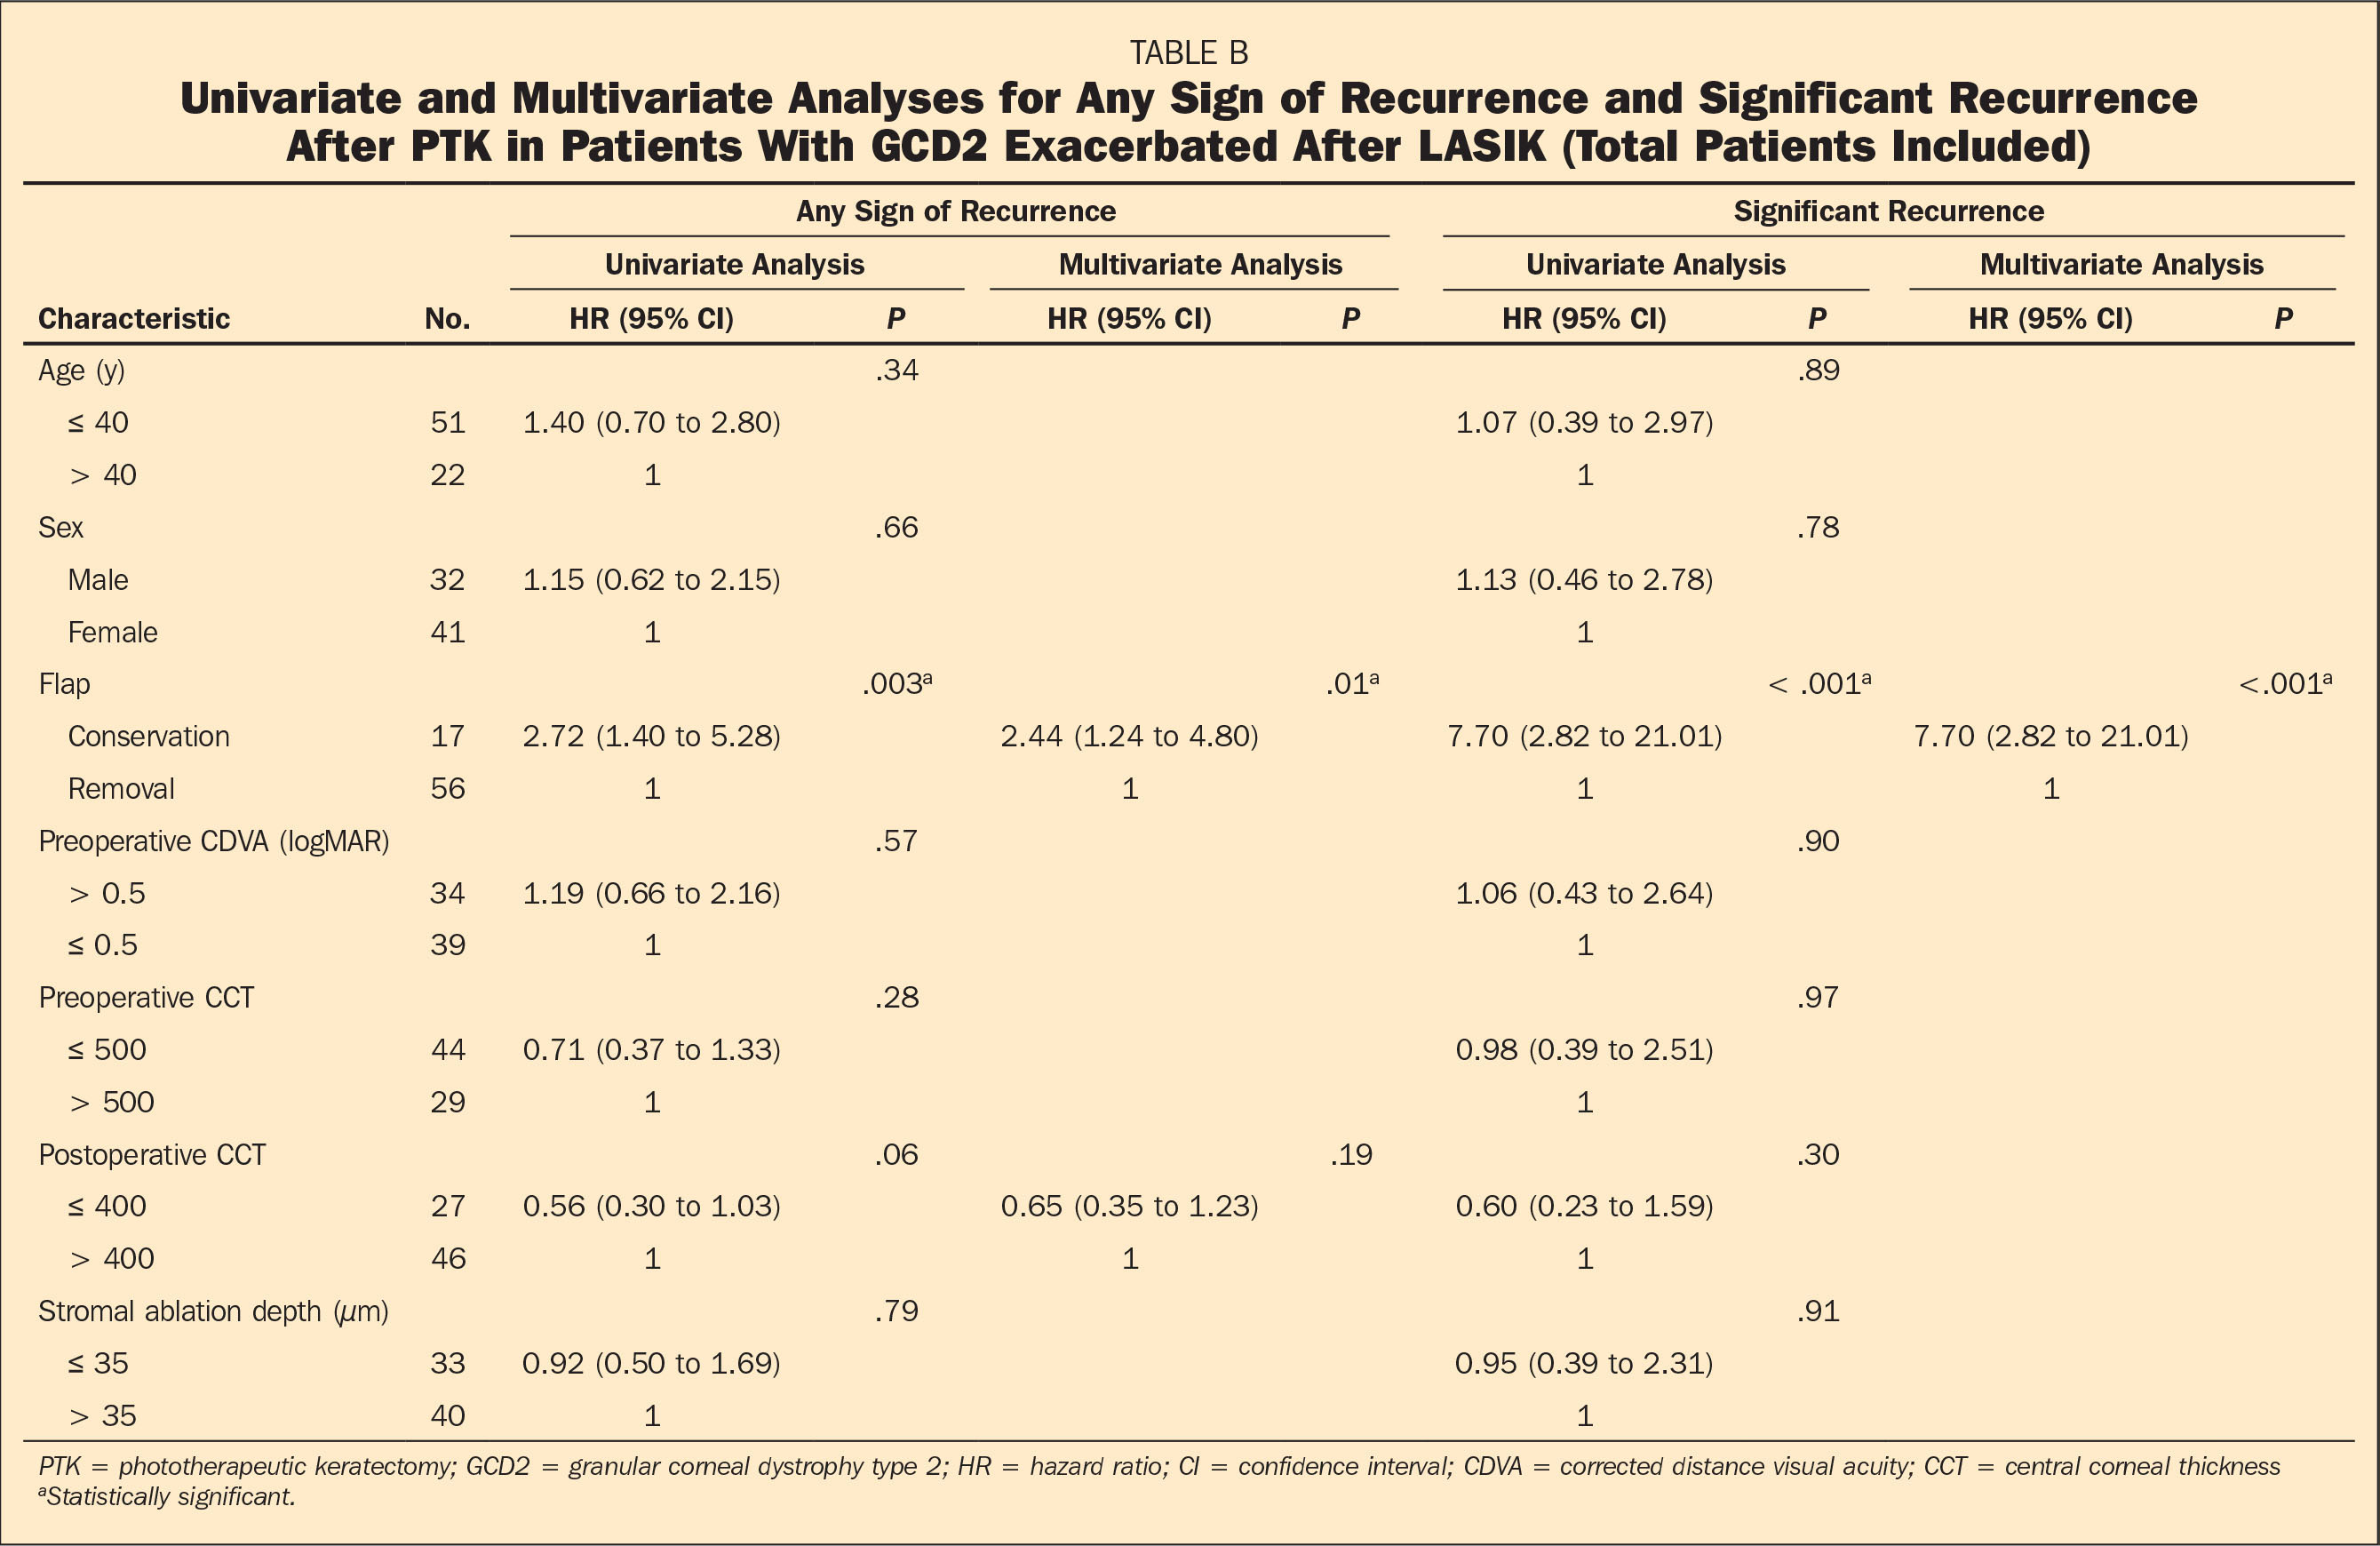 Univariate and Multivariate Analyses for Any Sign of Recurrence and Significant Recurrence After PTK in Patients With GCD2 Exacerbated After LASIK (Total Patients Included)